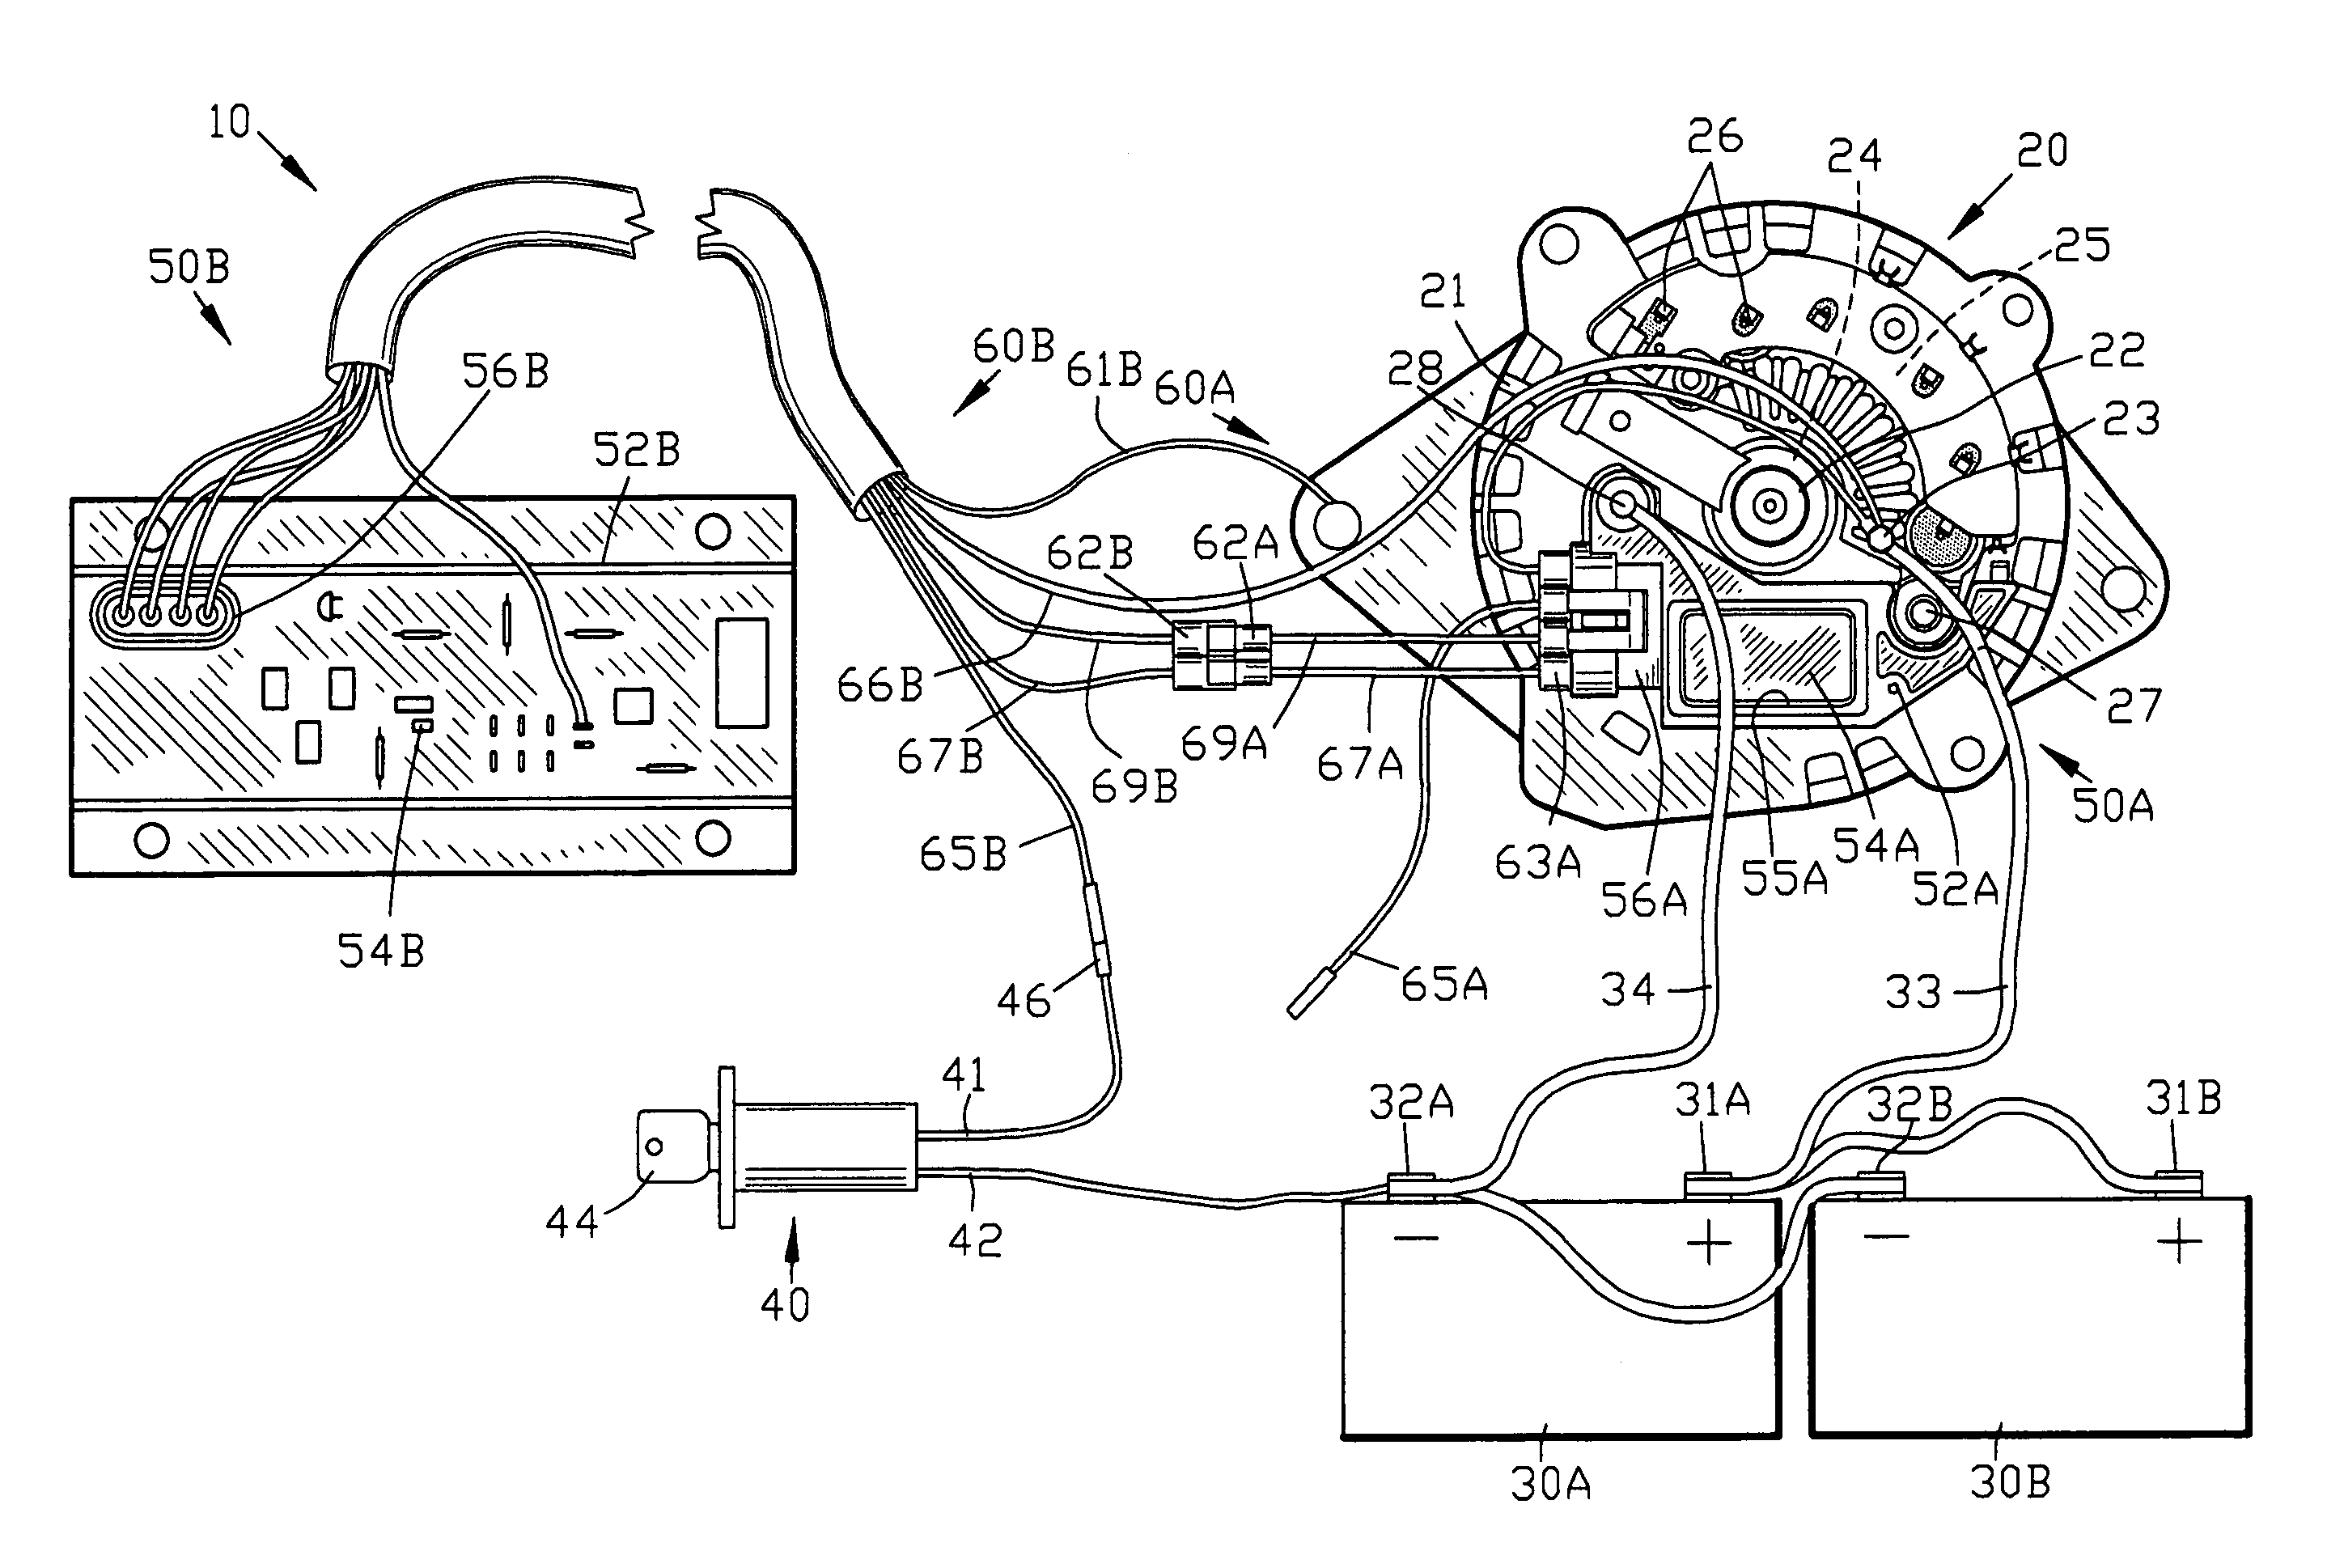 US07245111 20070717 D00000 patent us7245111 regulator system for alternator google patents ford alternator wiring diagram external regulator at gsmx.co